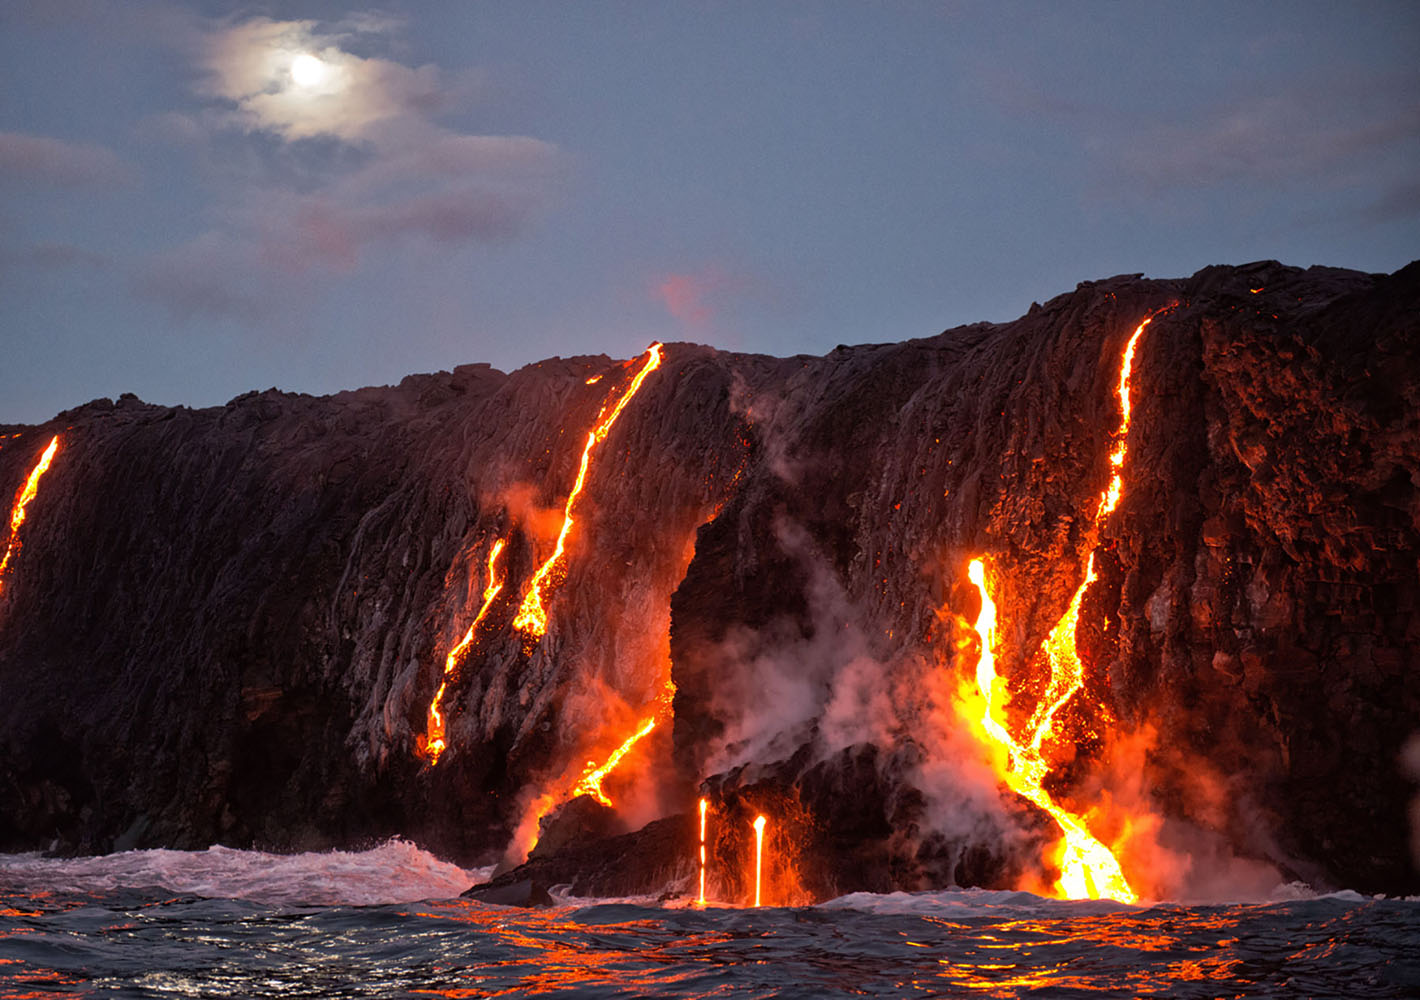 Lava flows into the water on an evening in Hawaii